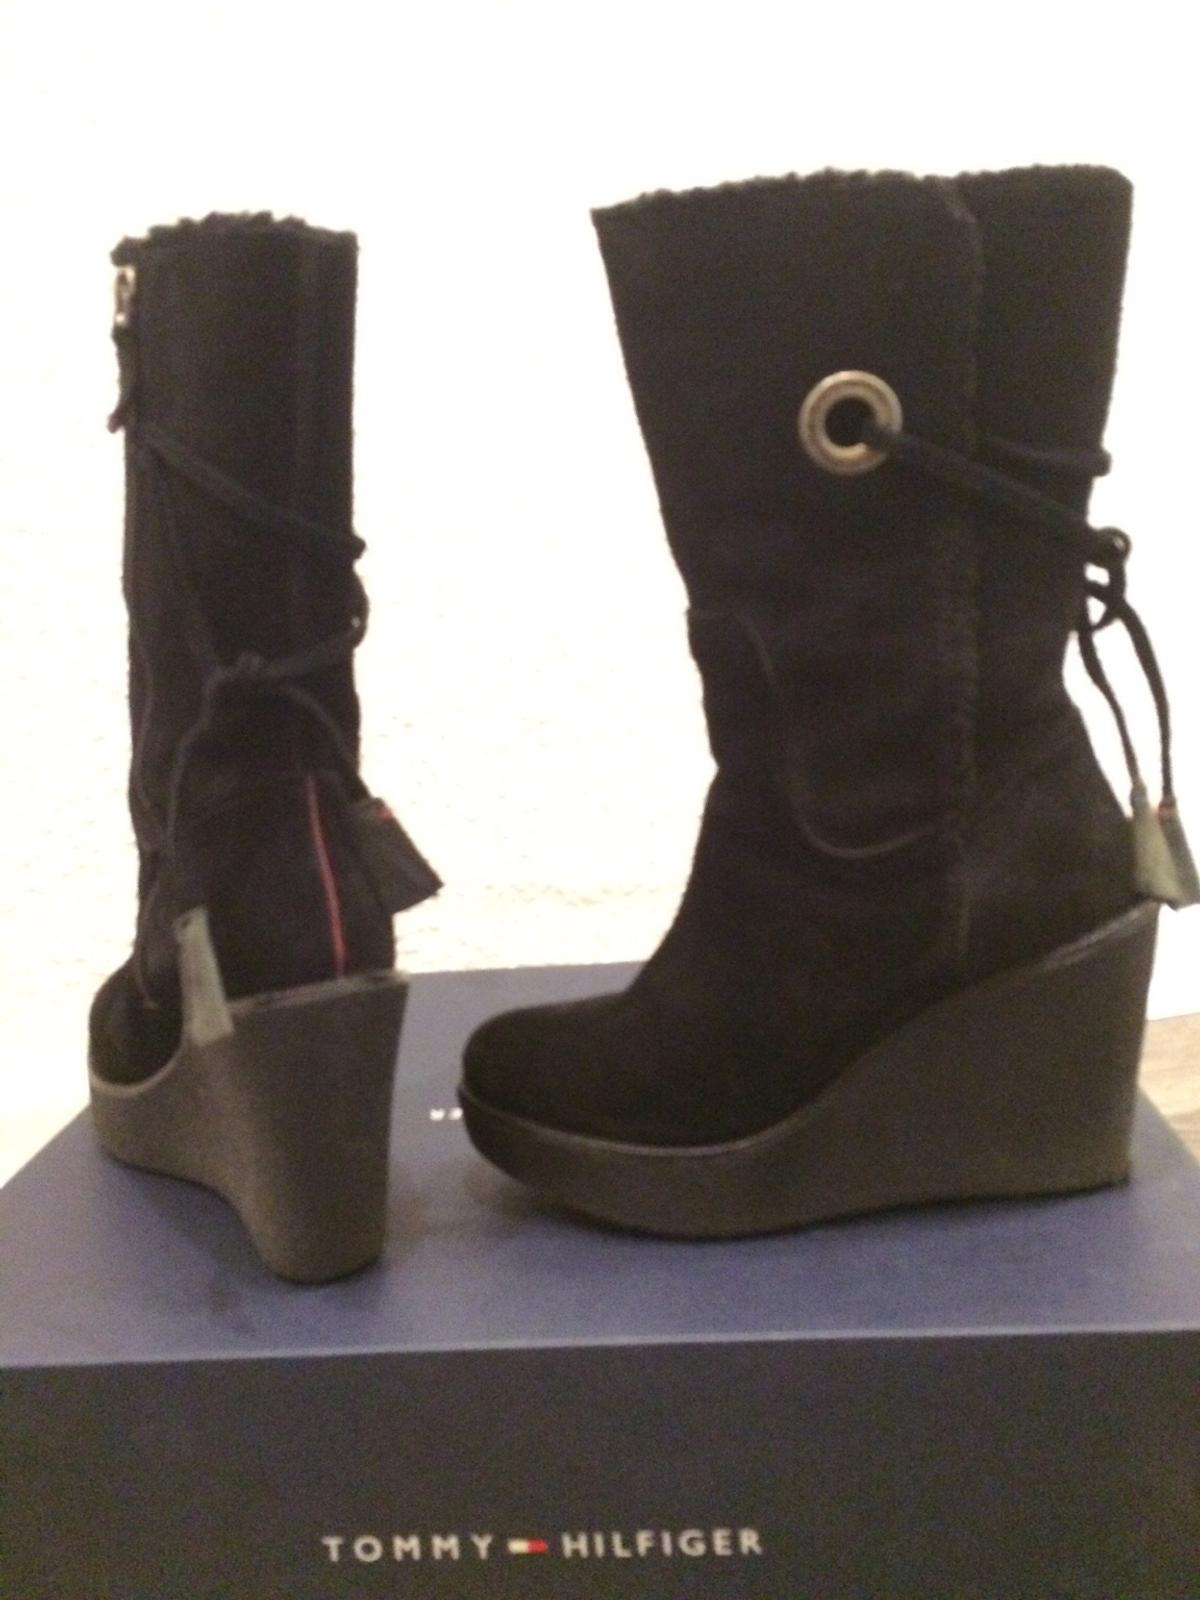 info for c5489 11c33 Tommy hilfiger Stiefel Boots Keilabsatz Gr 36